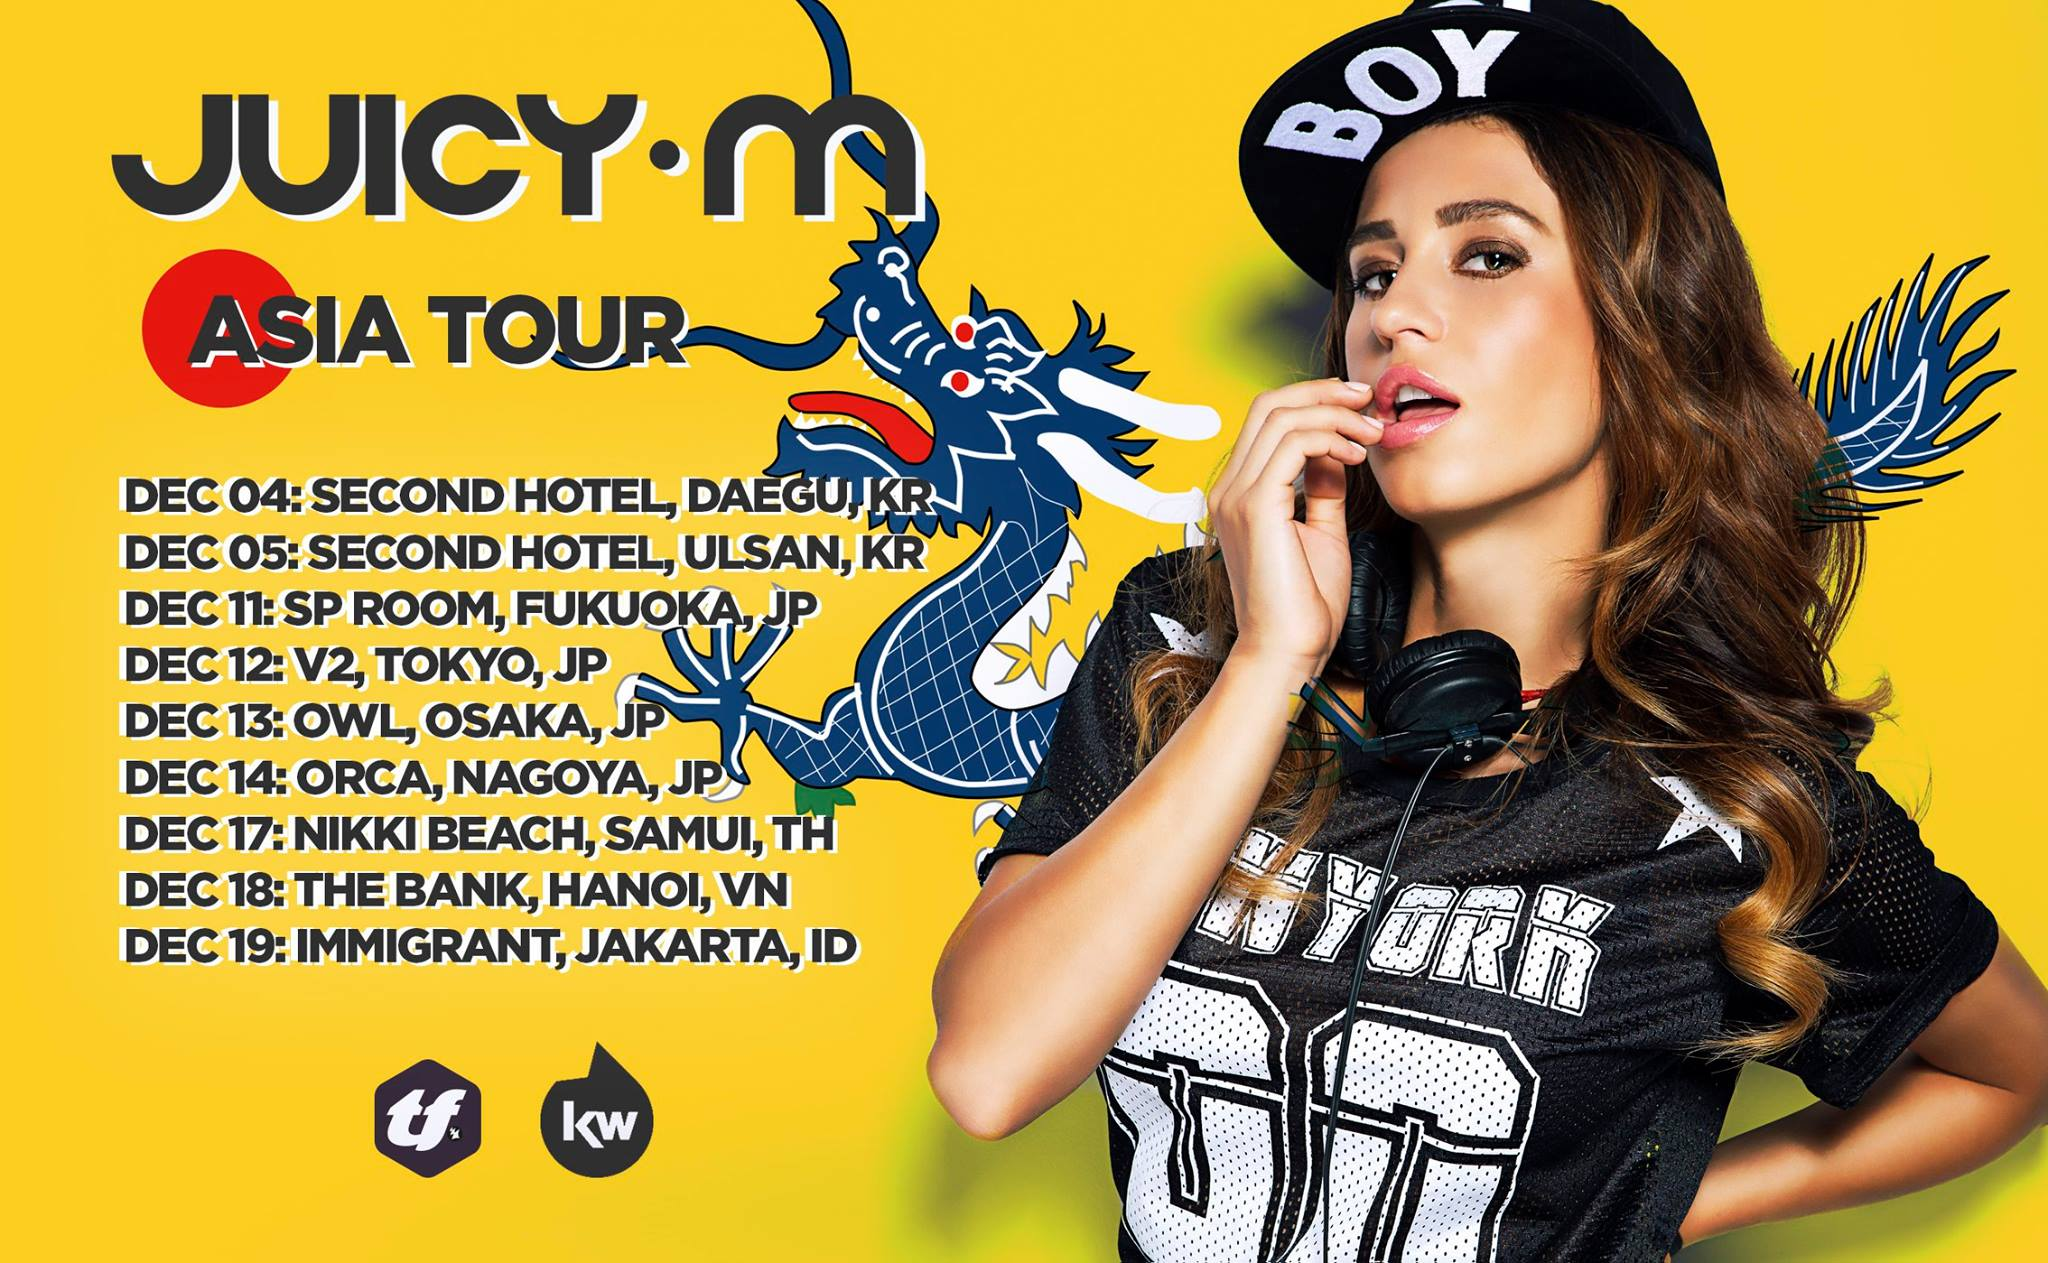 JUICY M 2015 ASIA TOUR